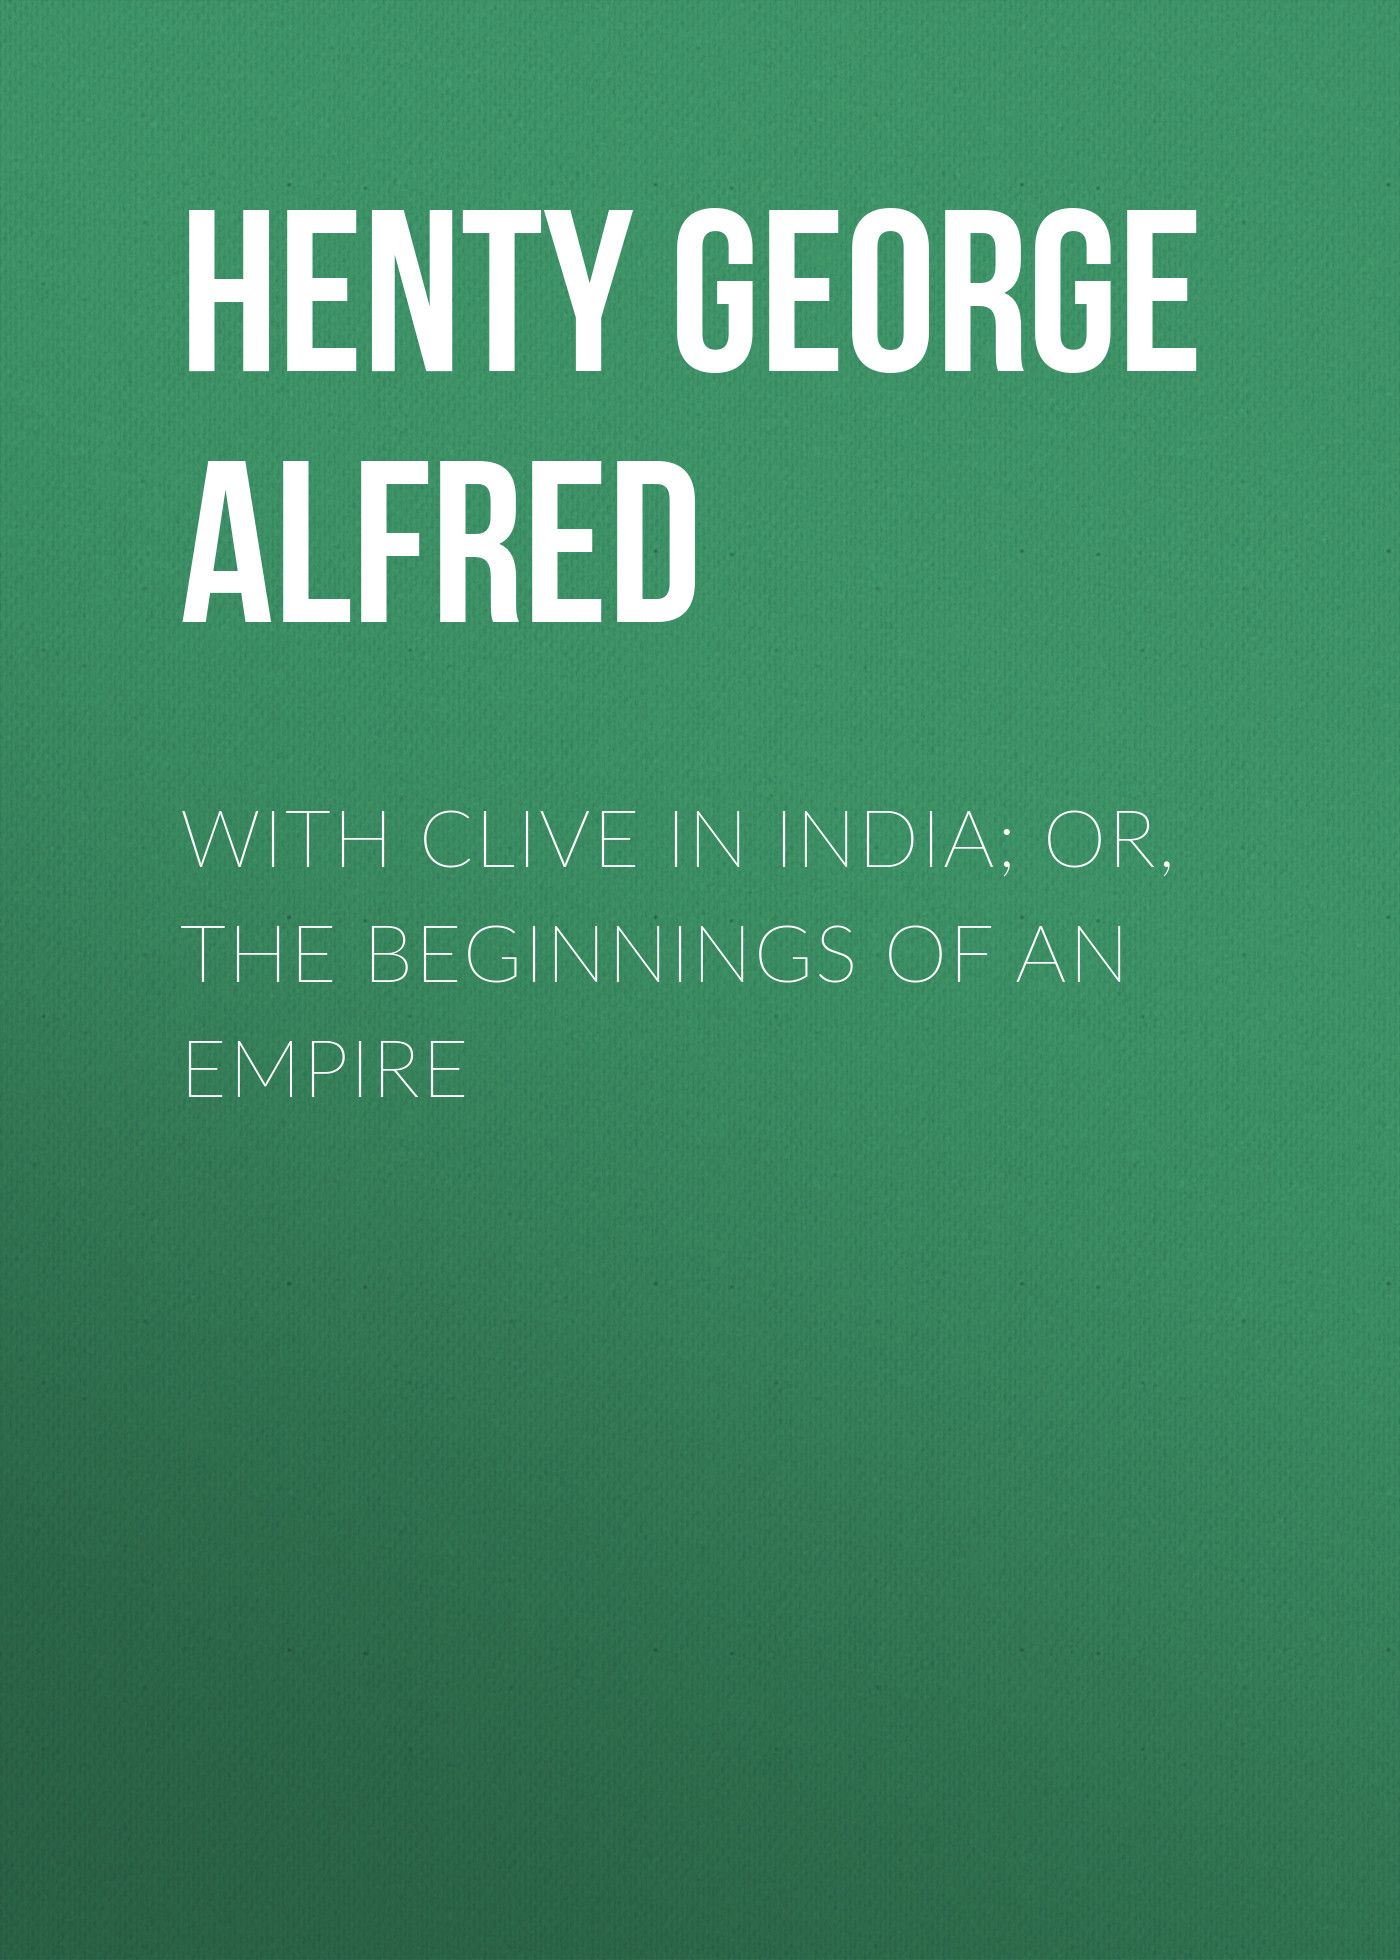 Henty George Alfred With Clive in India; Or, The Beginnings of an Empire new beginnings